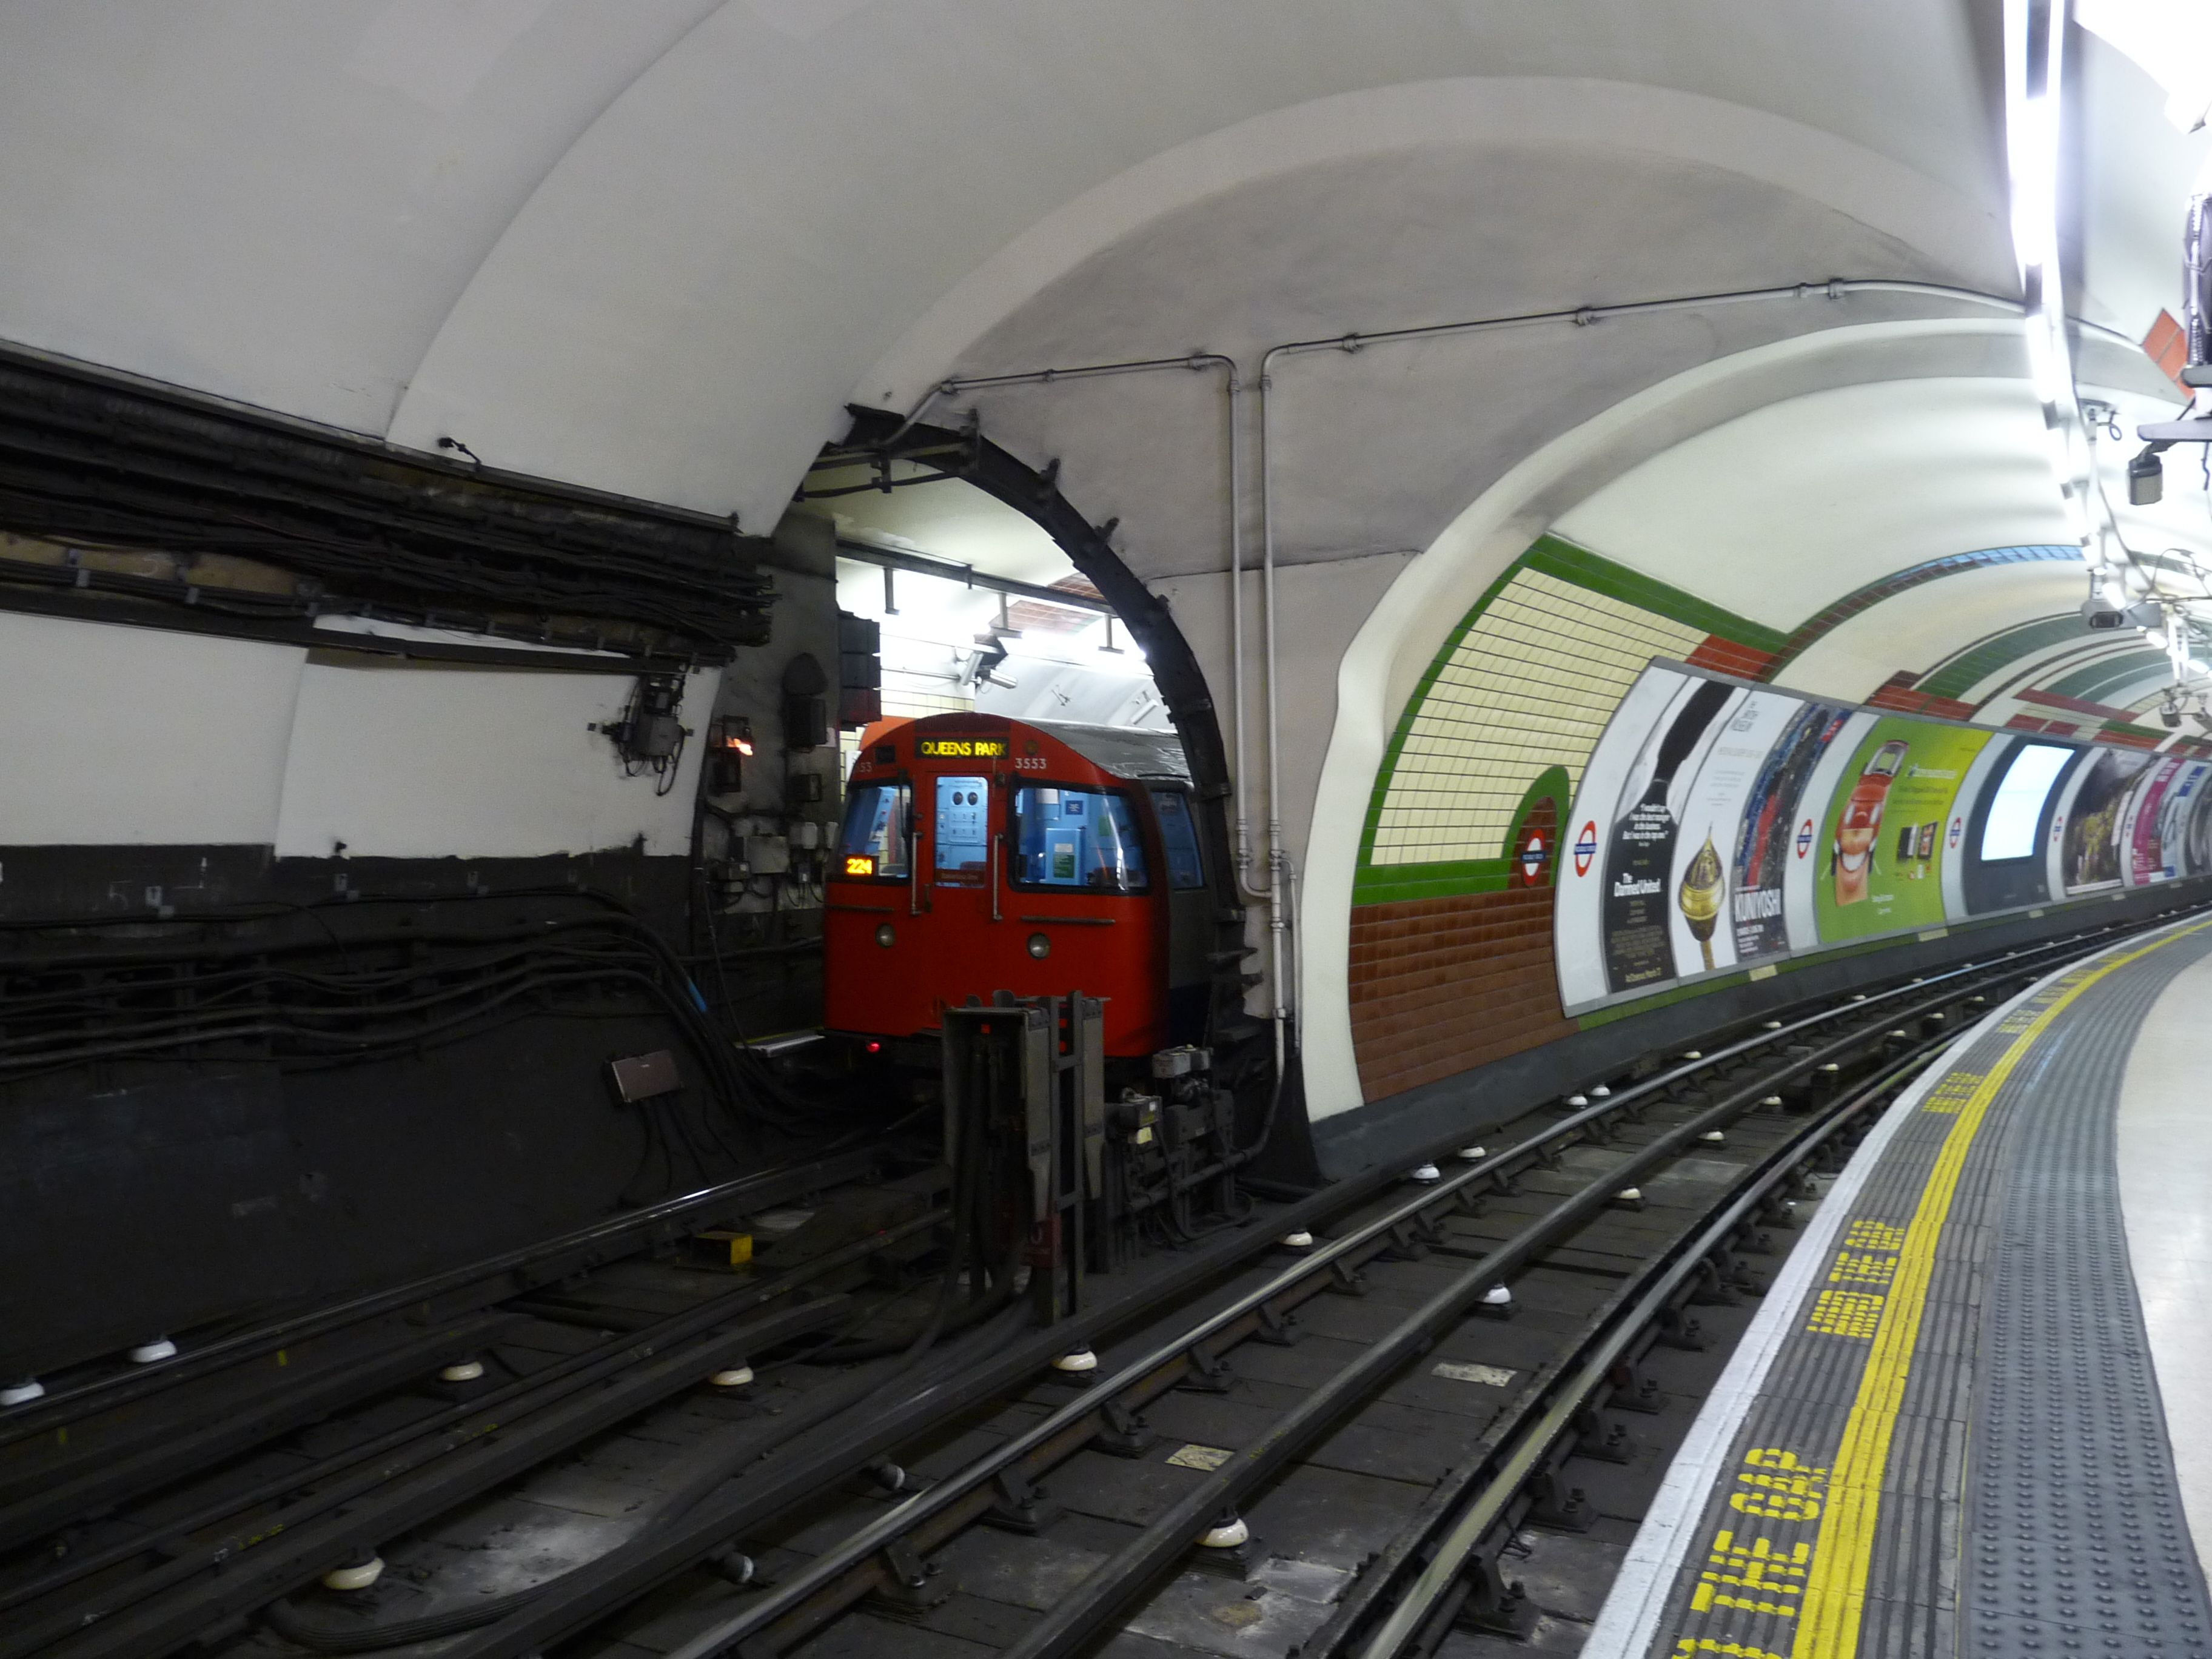 piccadilly circus tube station bakerloo line  Google Search